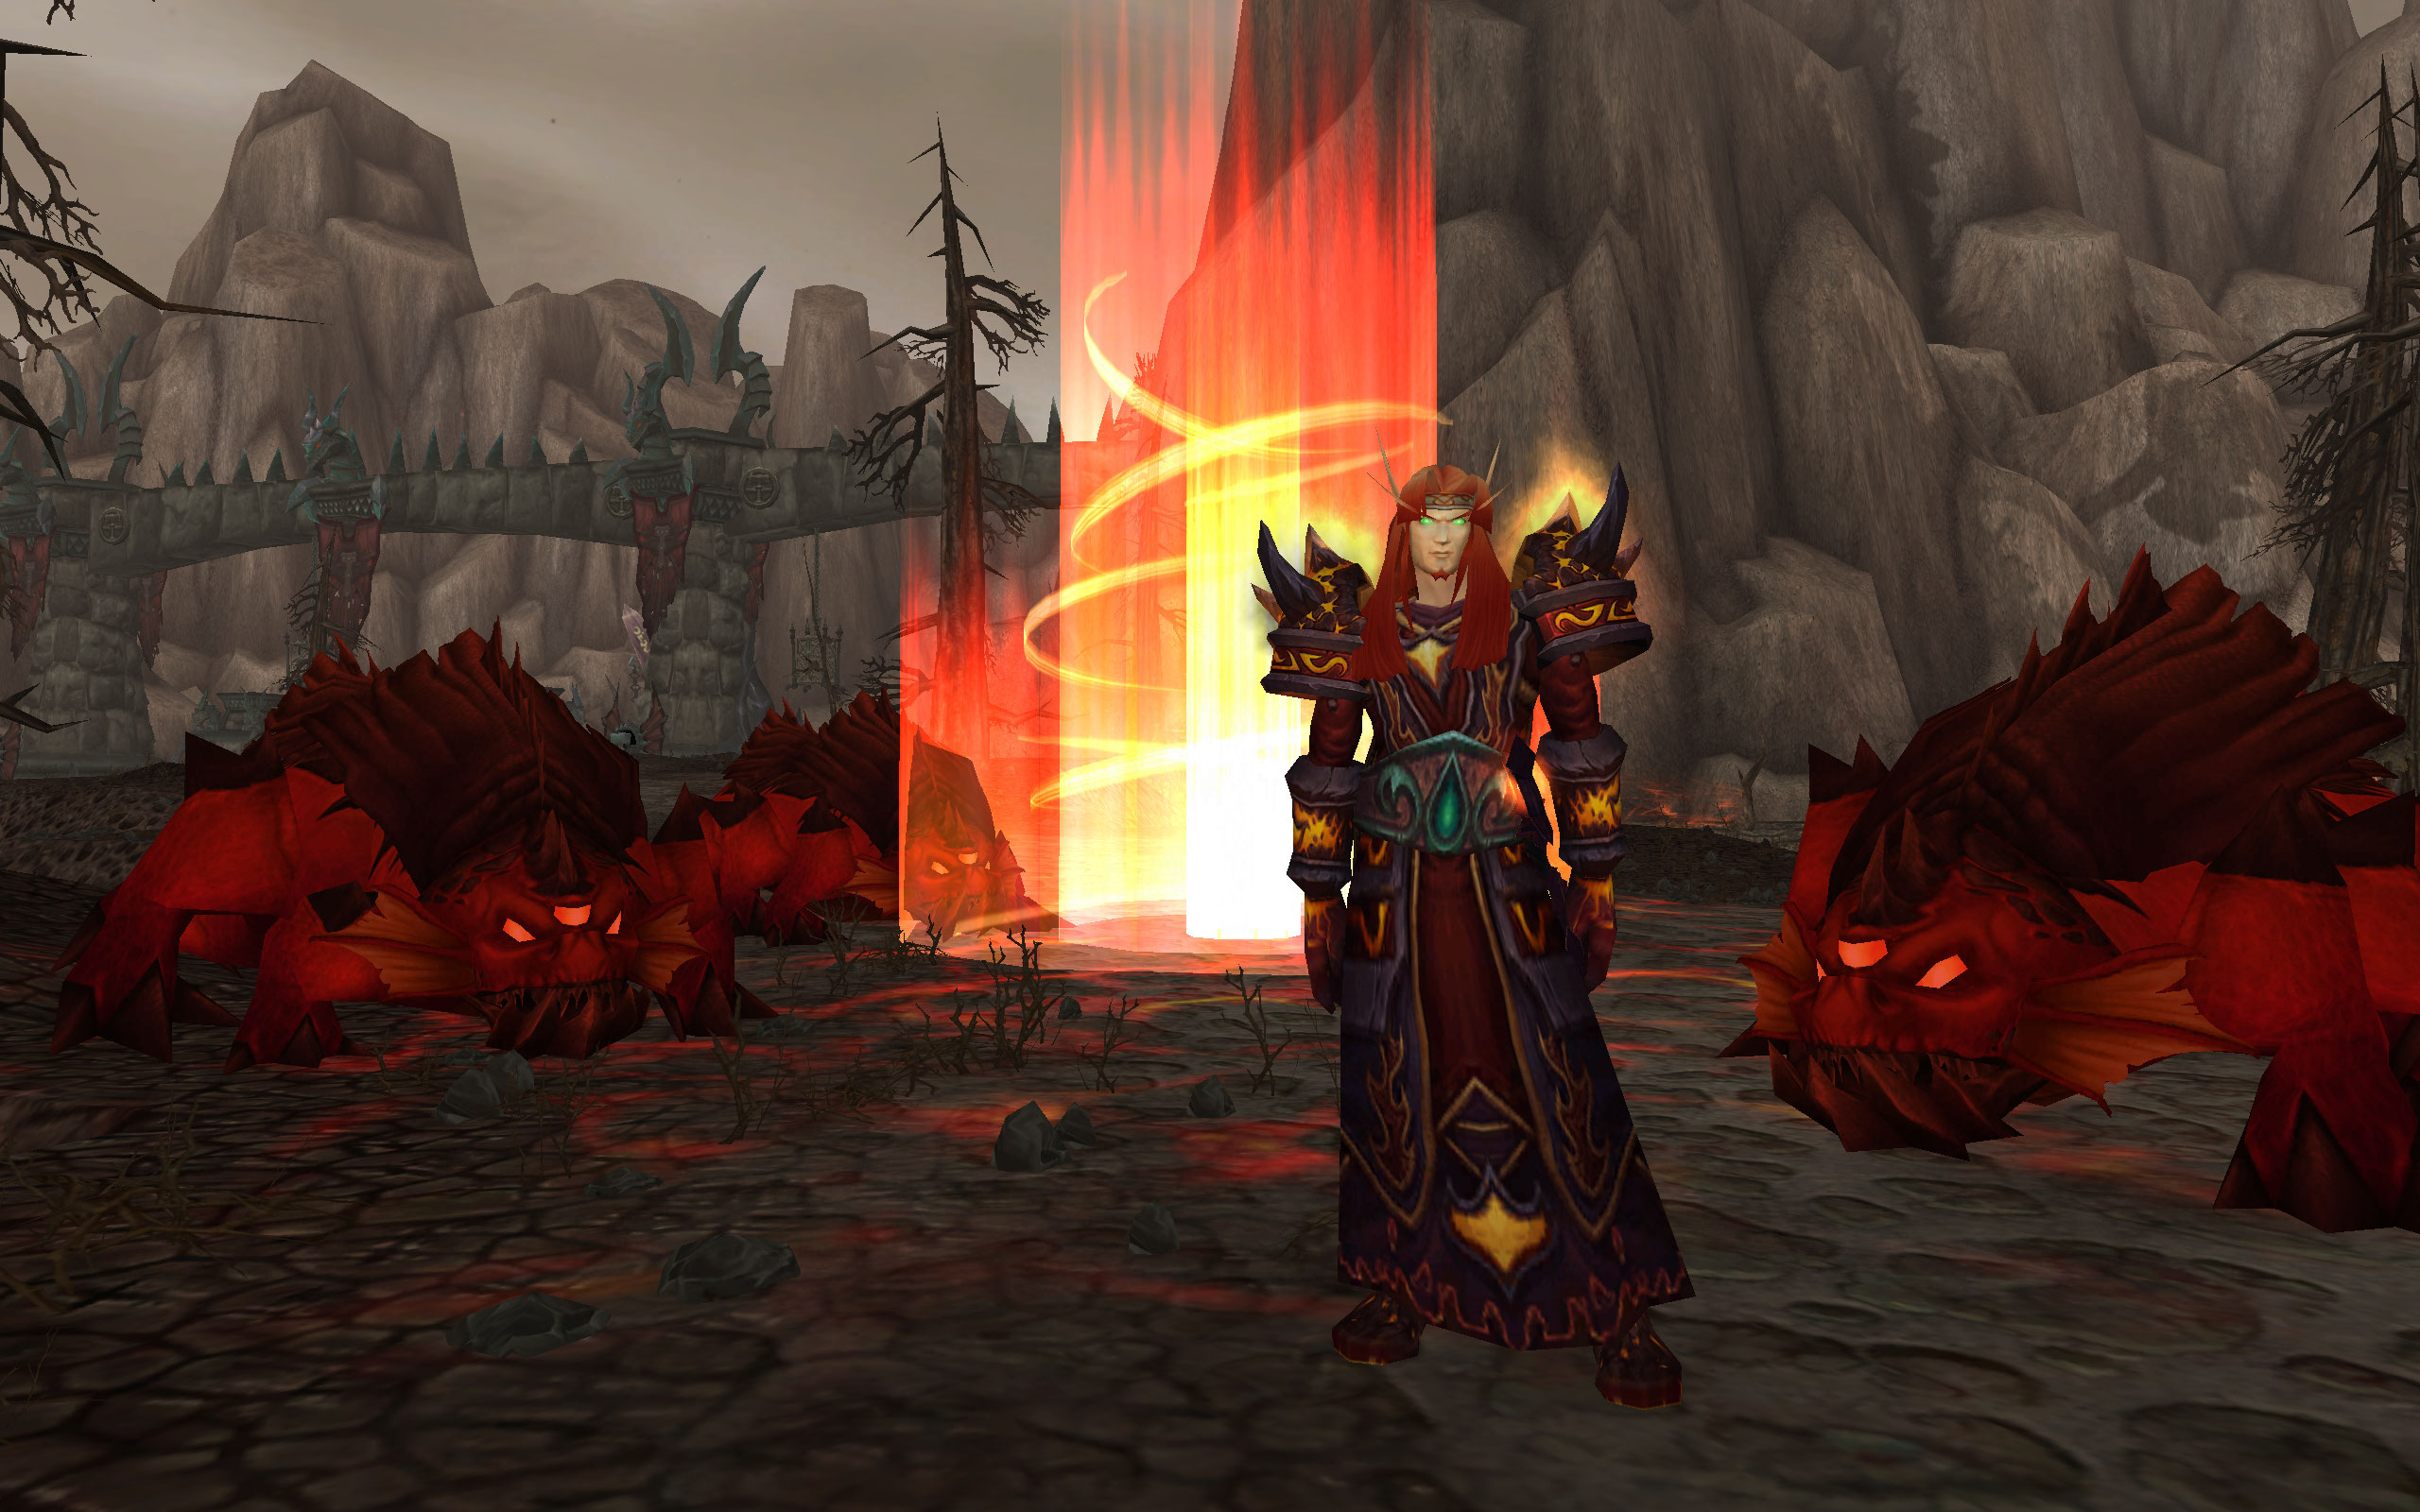 Blood Elf Names Wow Related Keywords & Suggestions - Blood